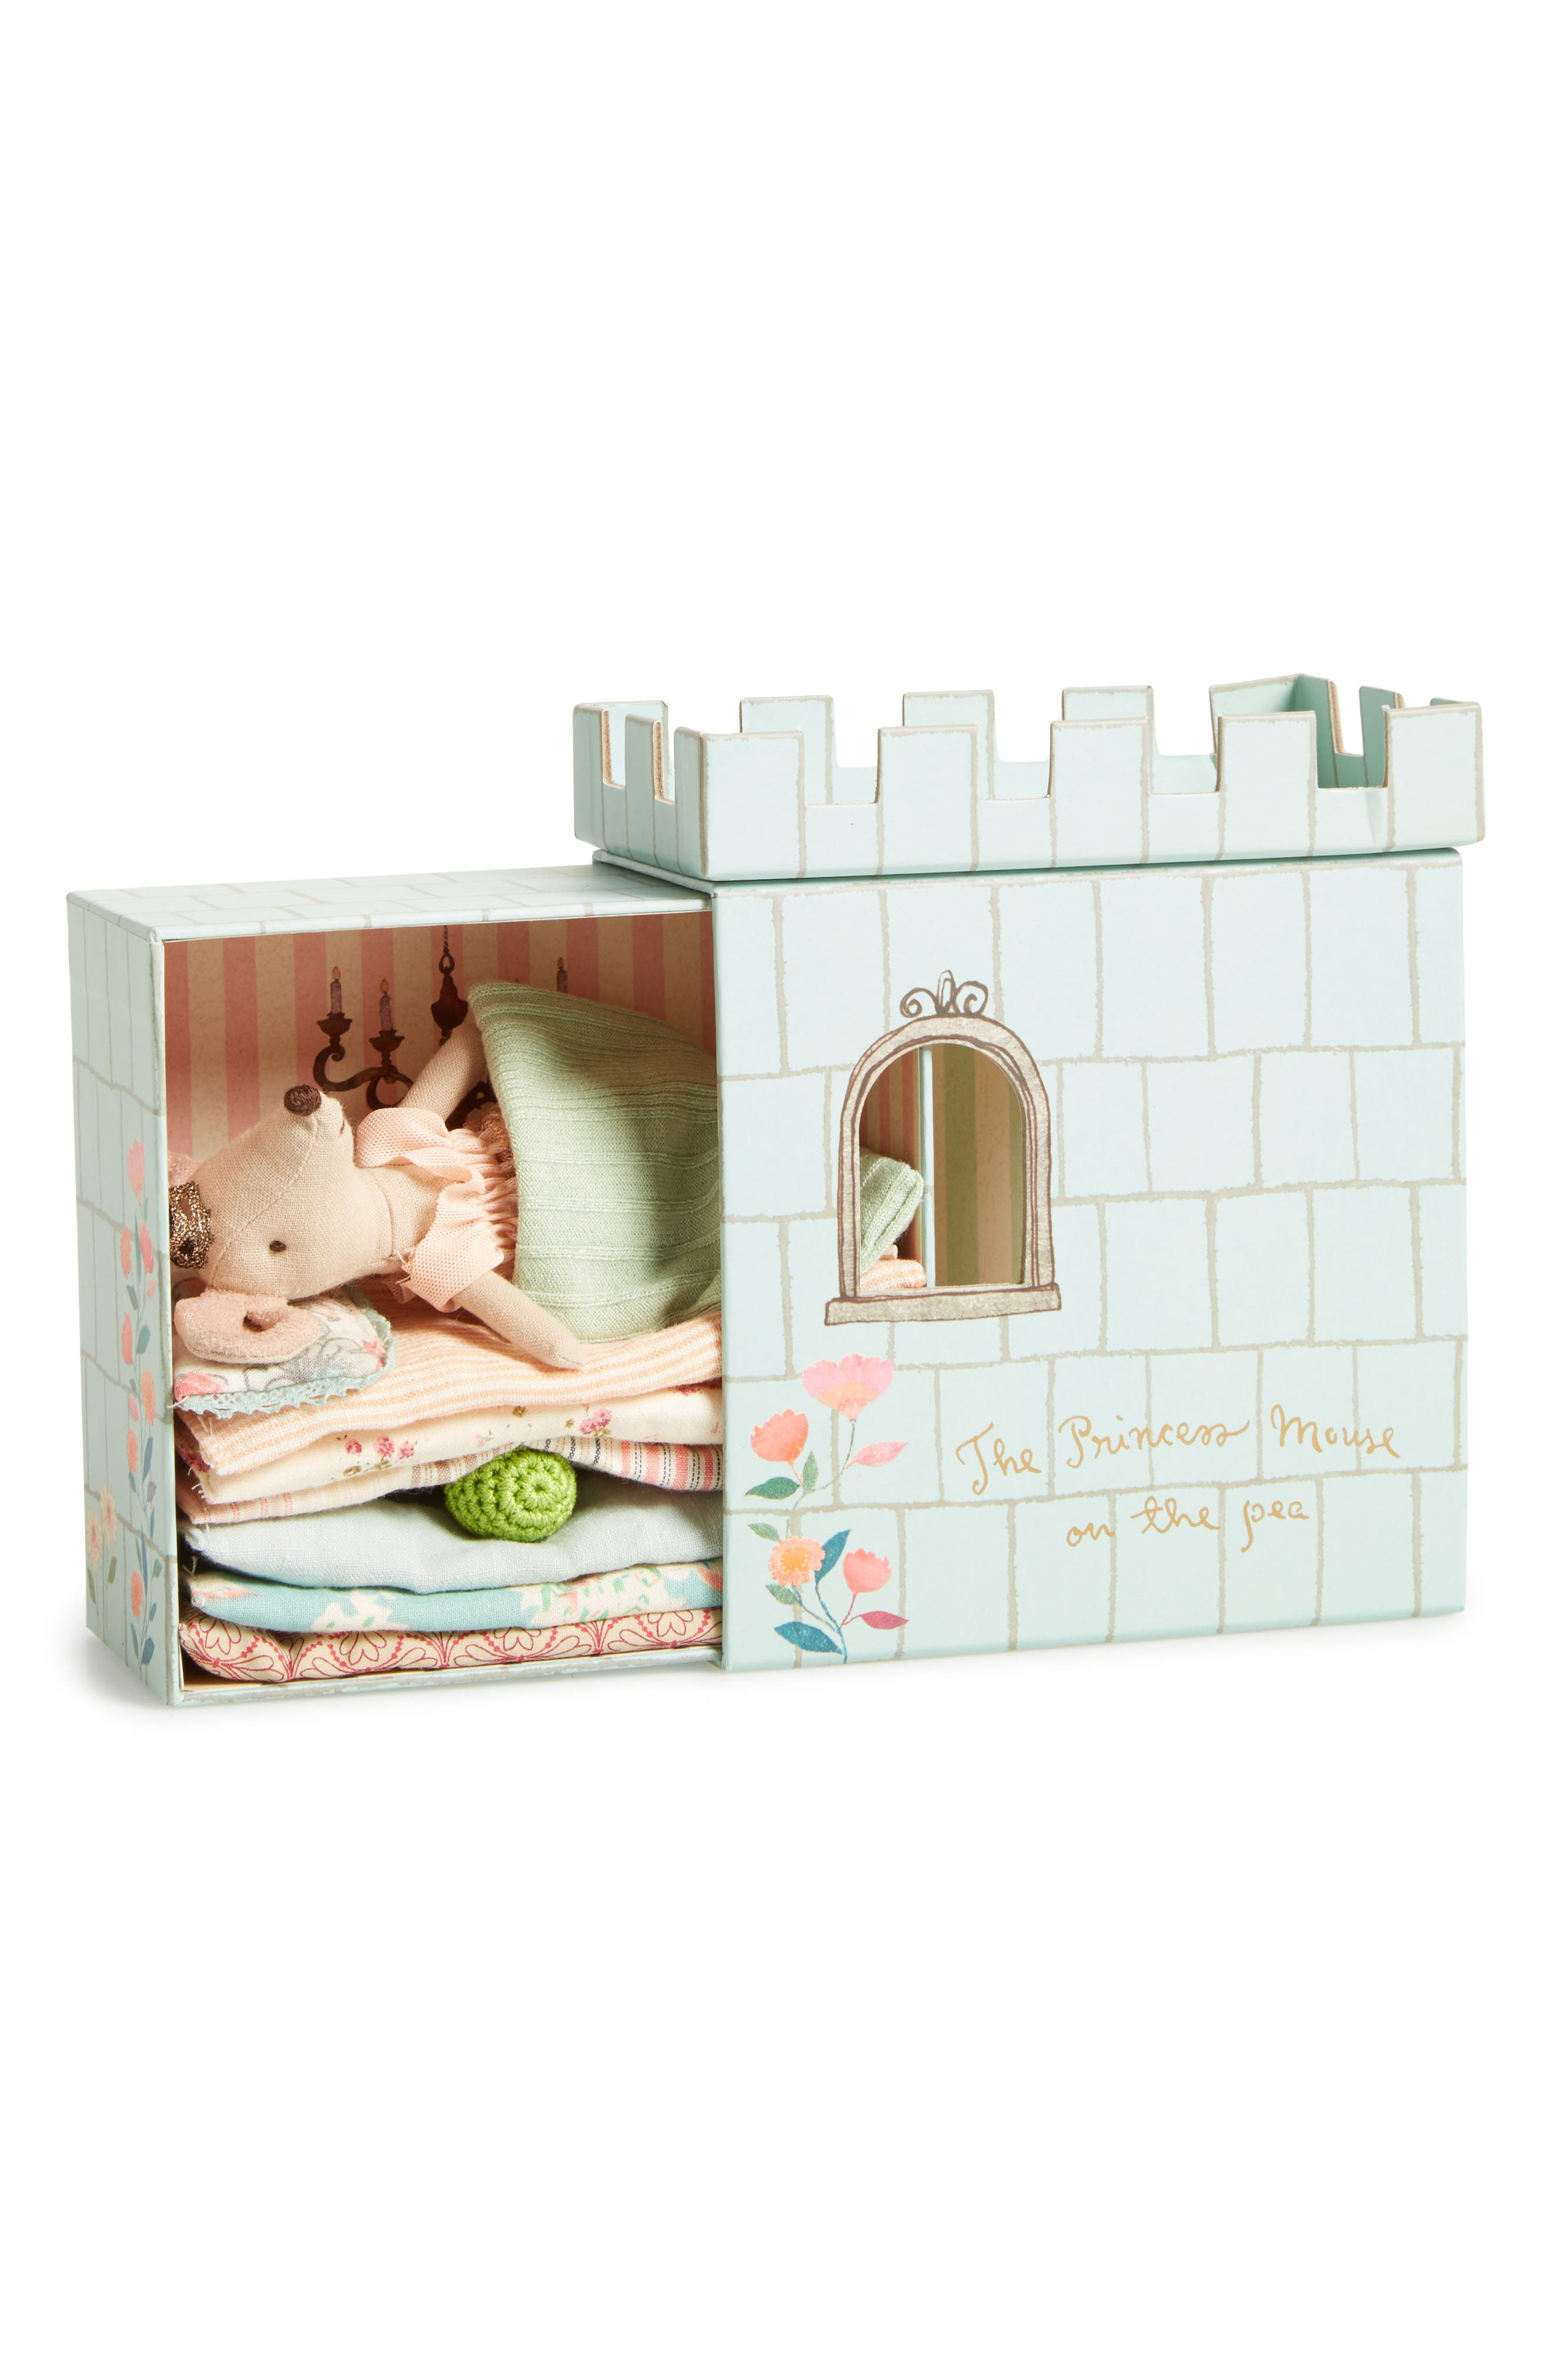 Princess & The Pea Stuffed Mouse and Play Set,                             Main thumbnail 1, color,                             020